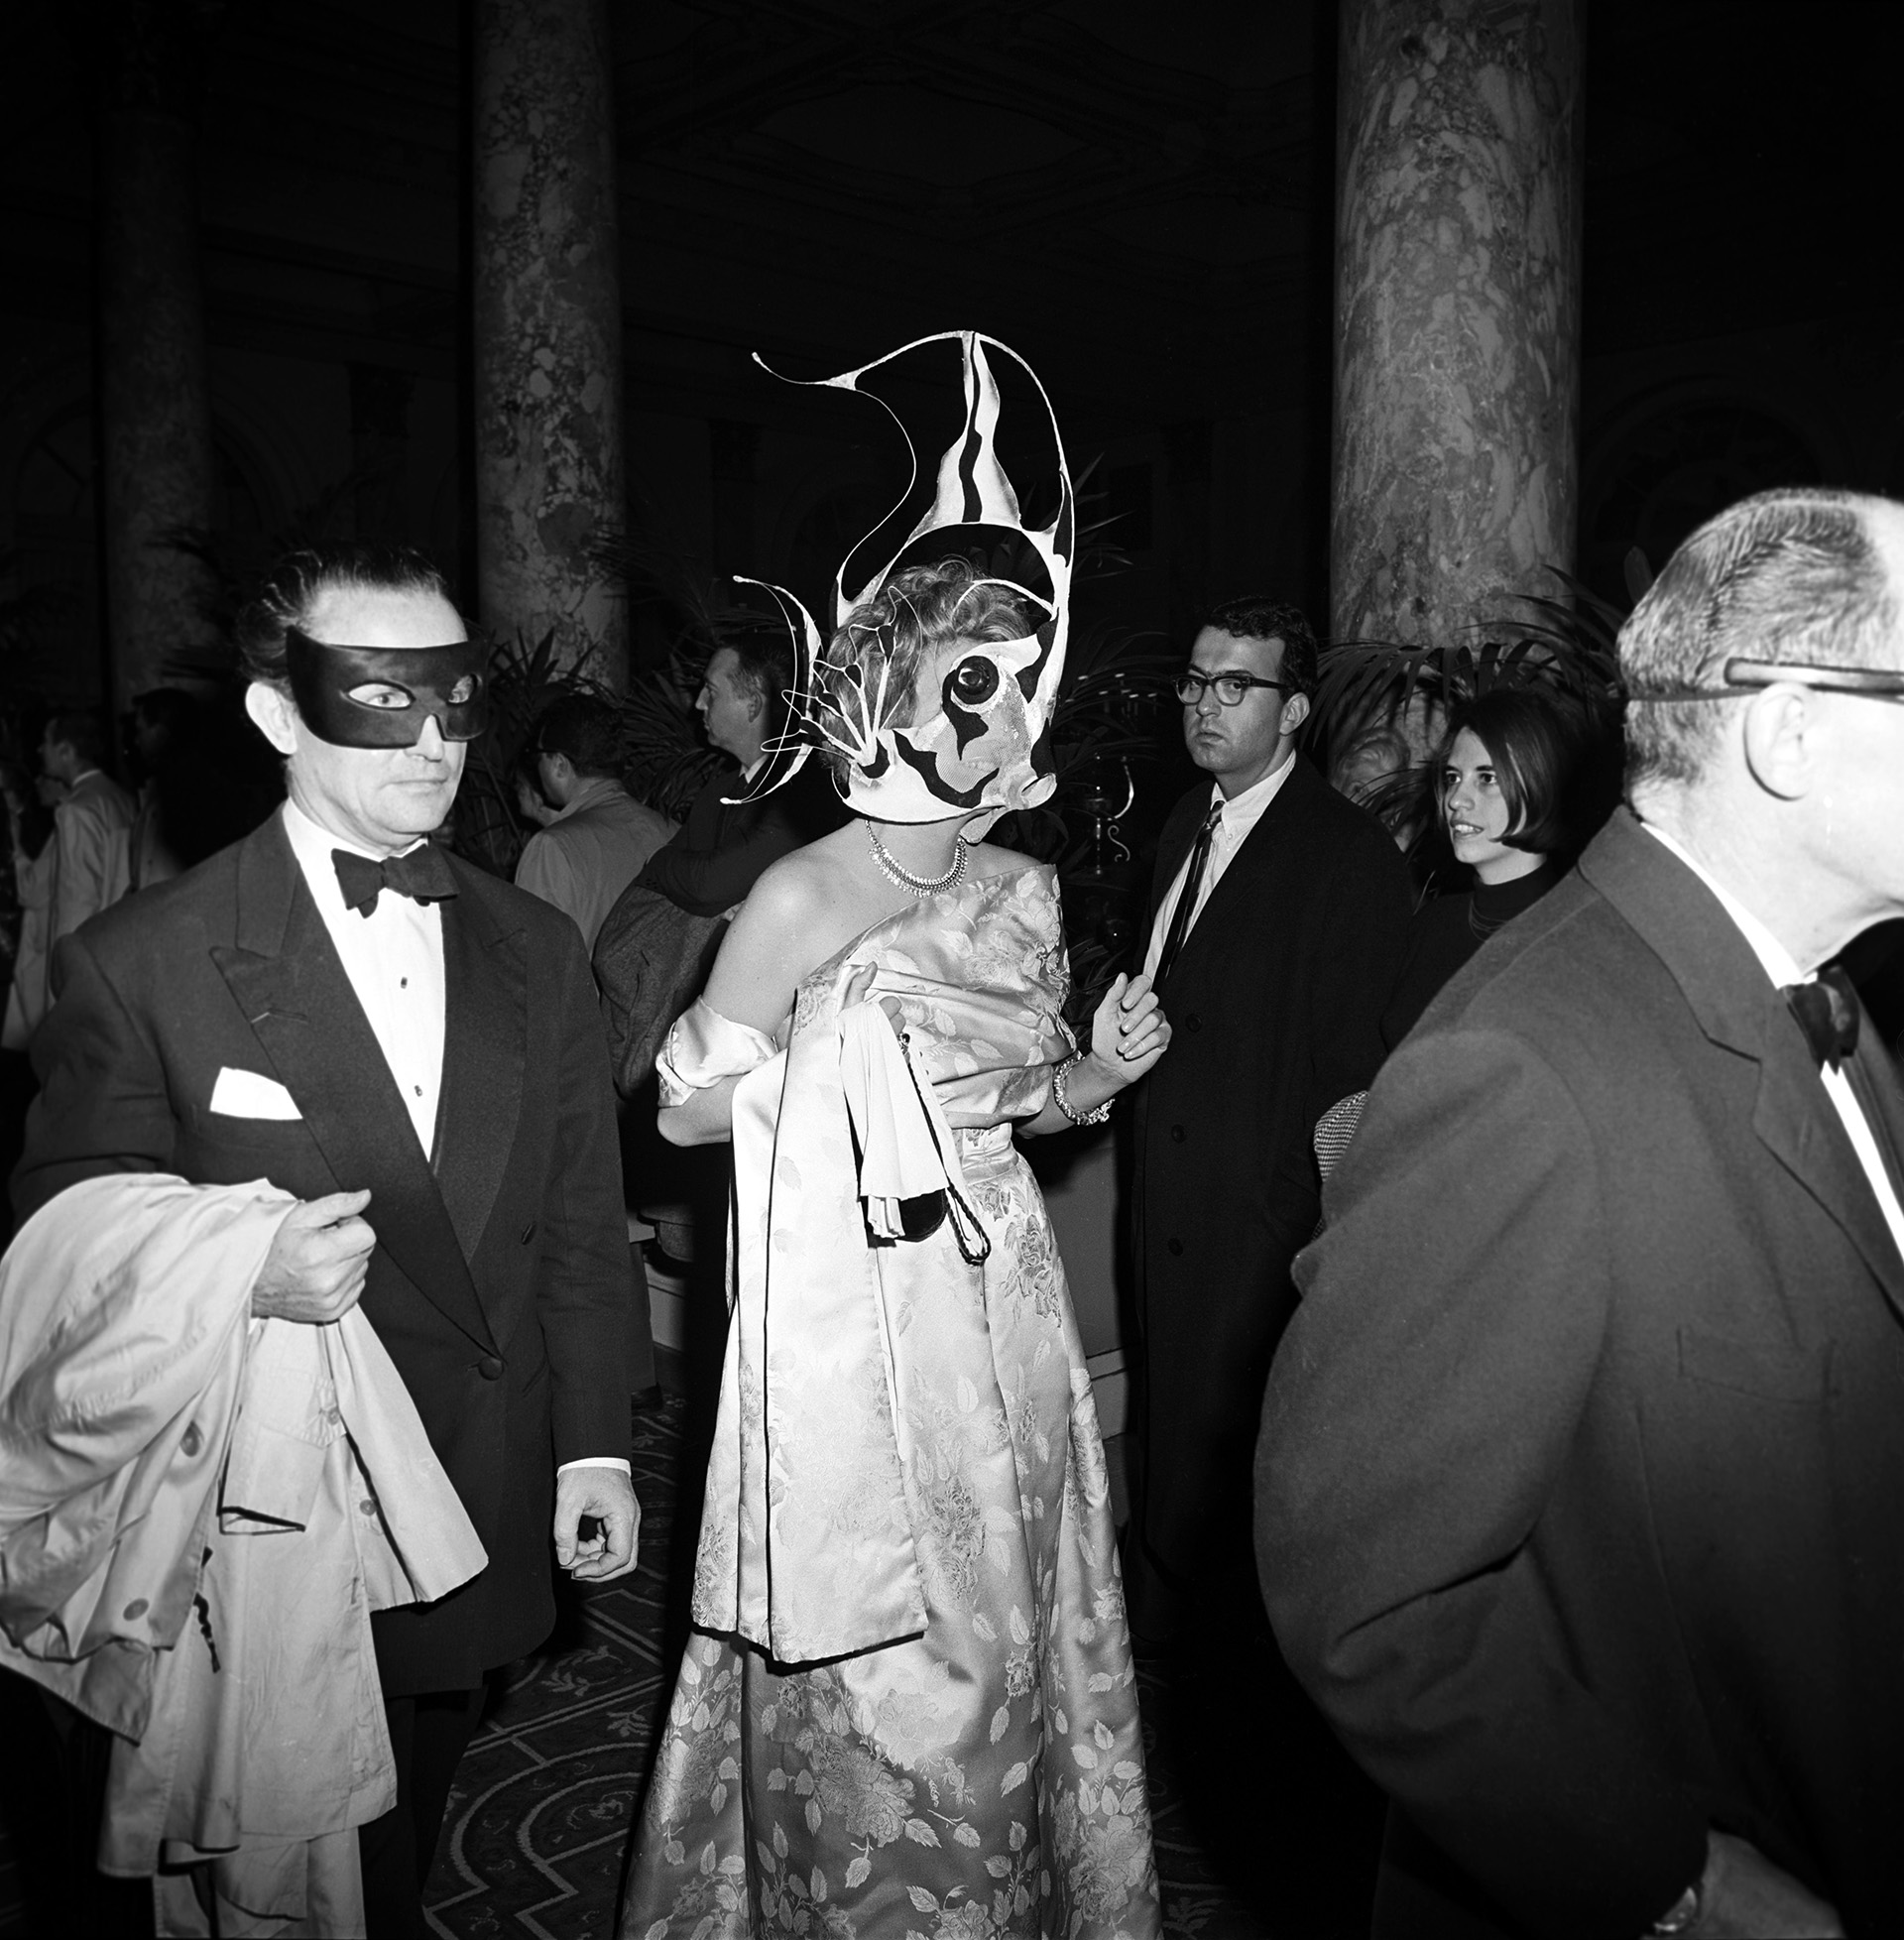 A couple in masks arriving at Truman Capote's Black and White Ball in the Grand Ballroom at the Plaza Hotel in New York City, 1966. (Credit: Morrison Ray ''Scotty/Penske Media/REX/Shutterstock)